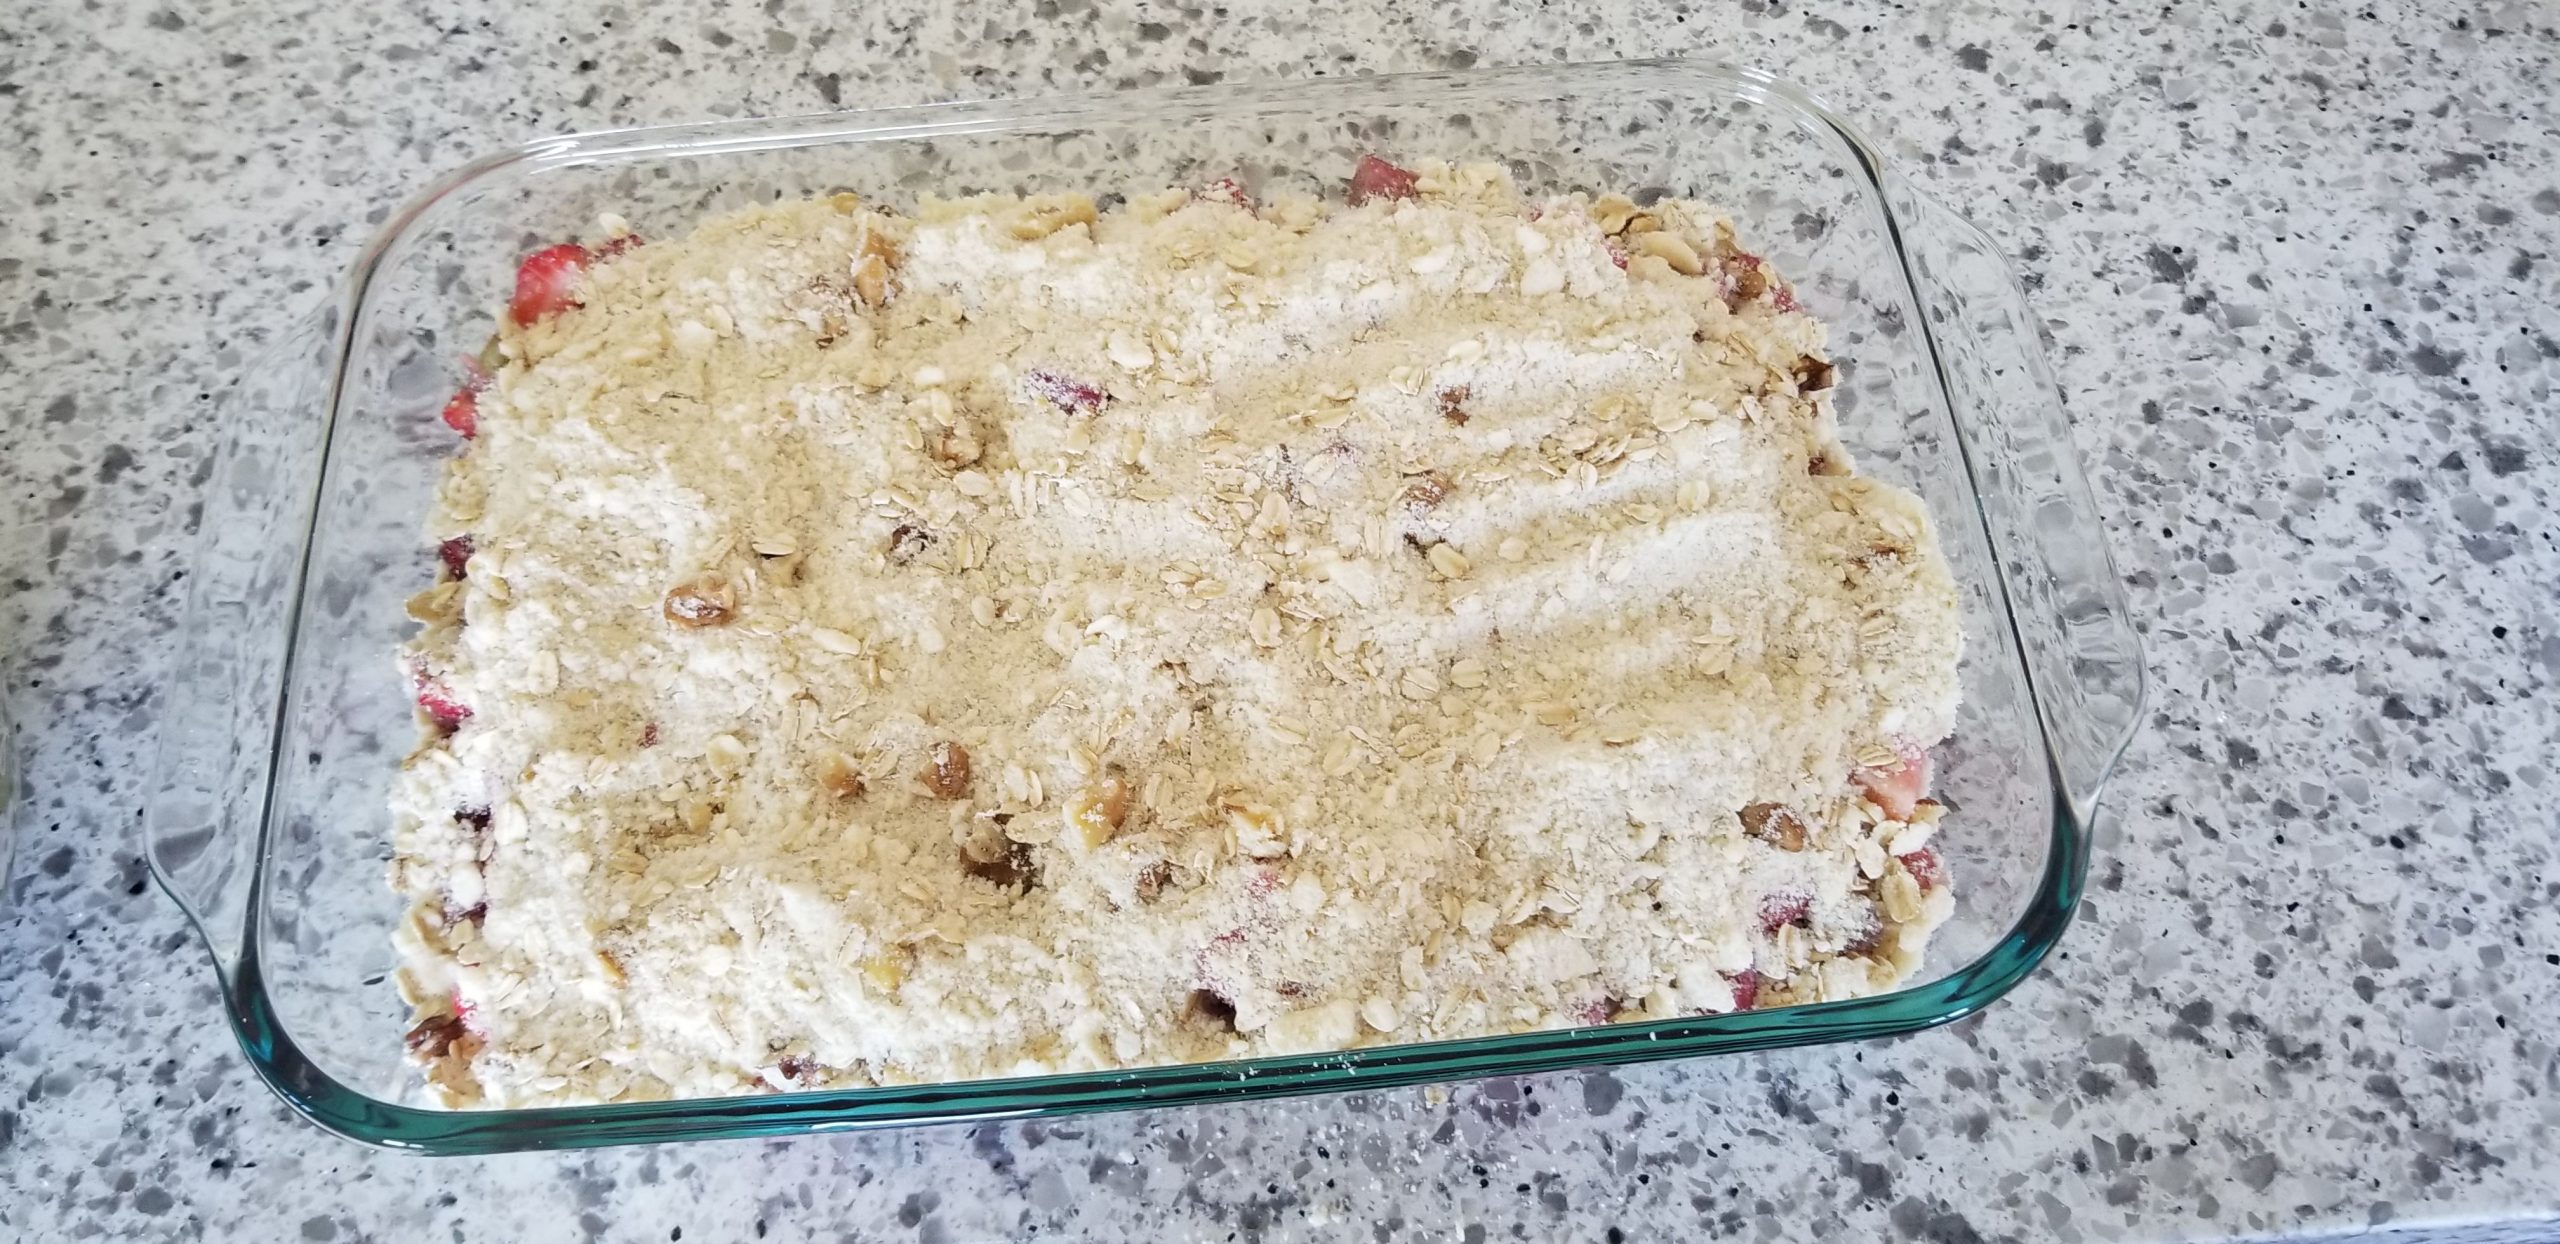 The dairy-free strawberry rhubarb crisp in a casserole dish before it goes in the oven